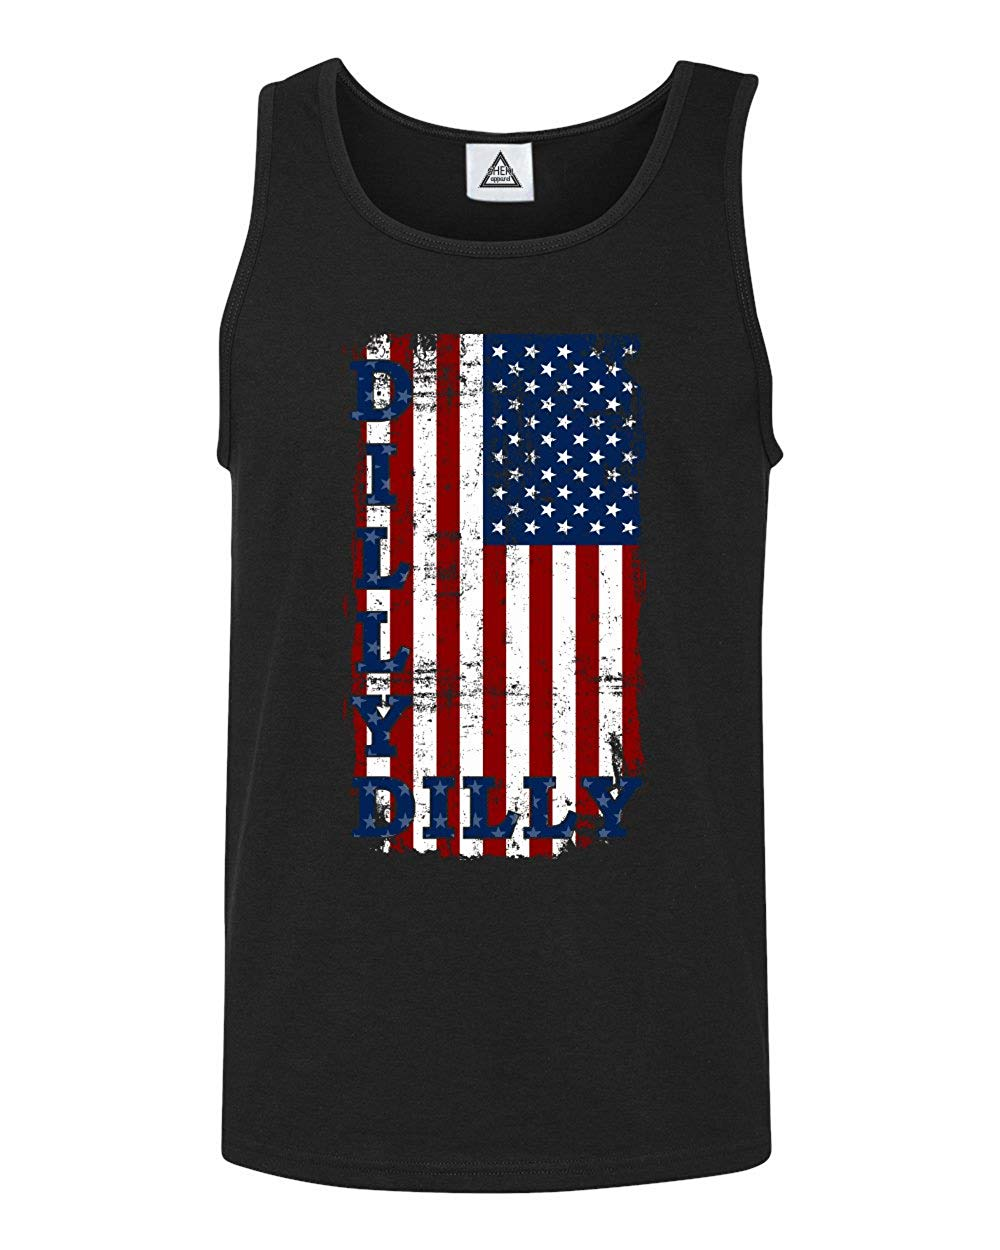 Sheki Apparel Dilly Dilly American Flag Tank Top